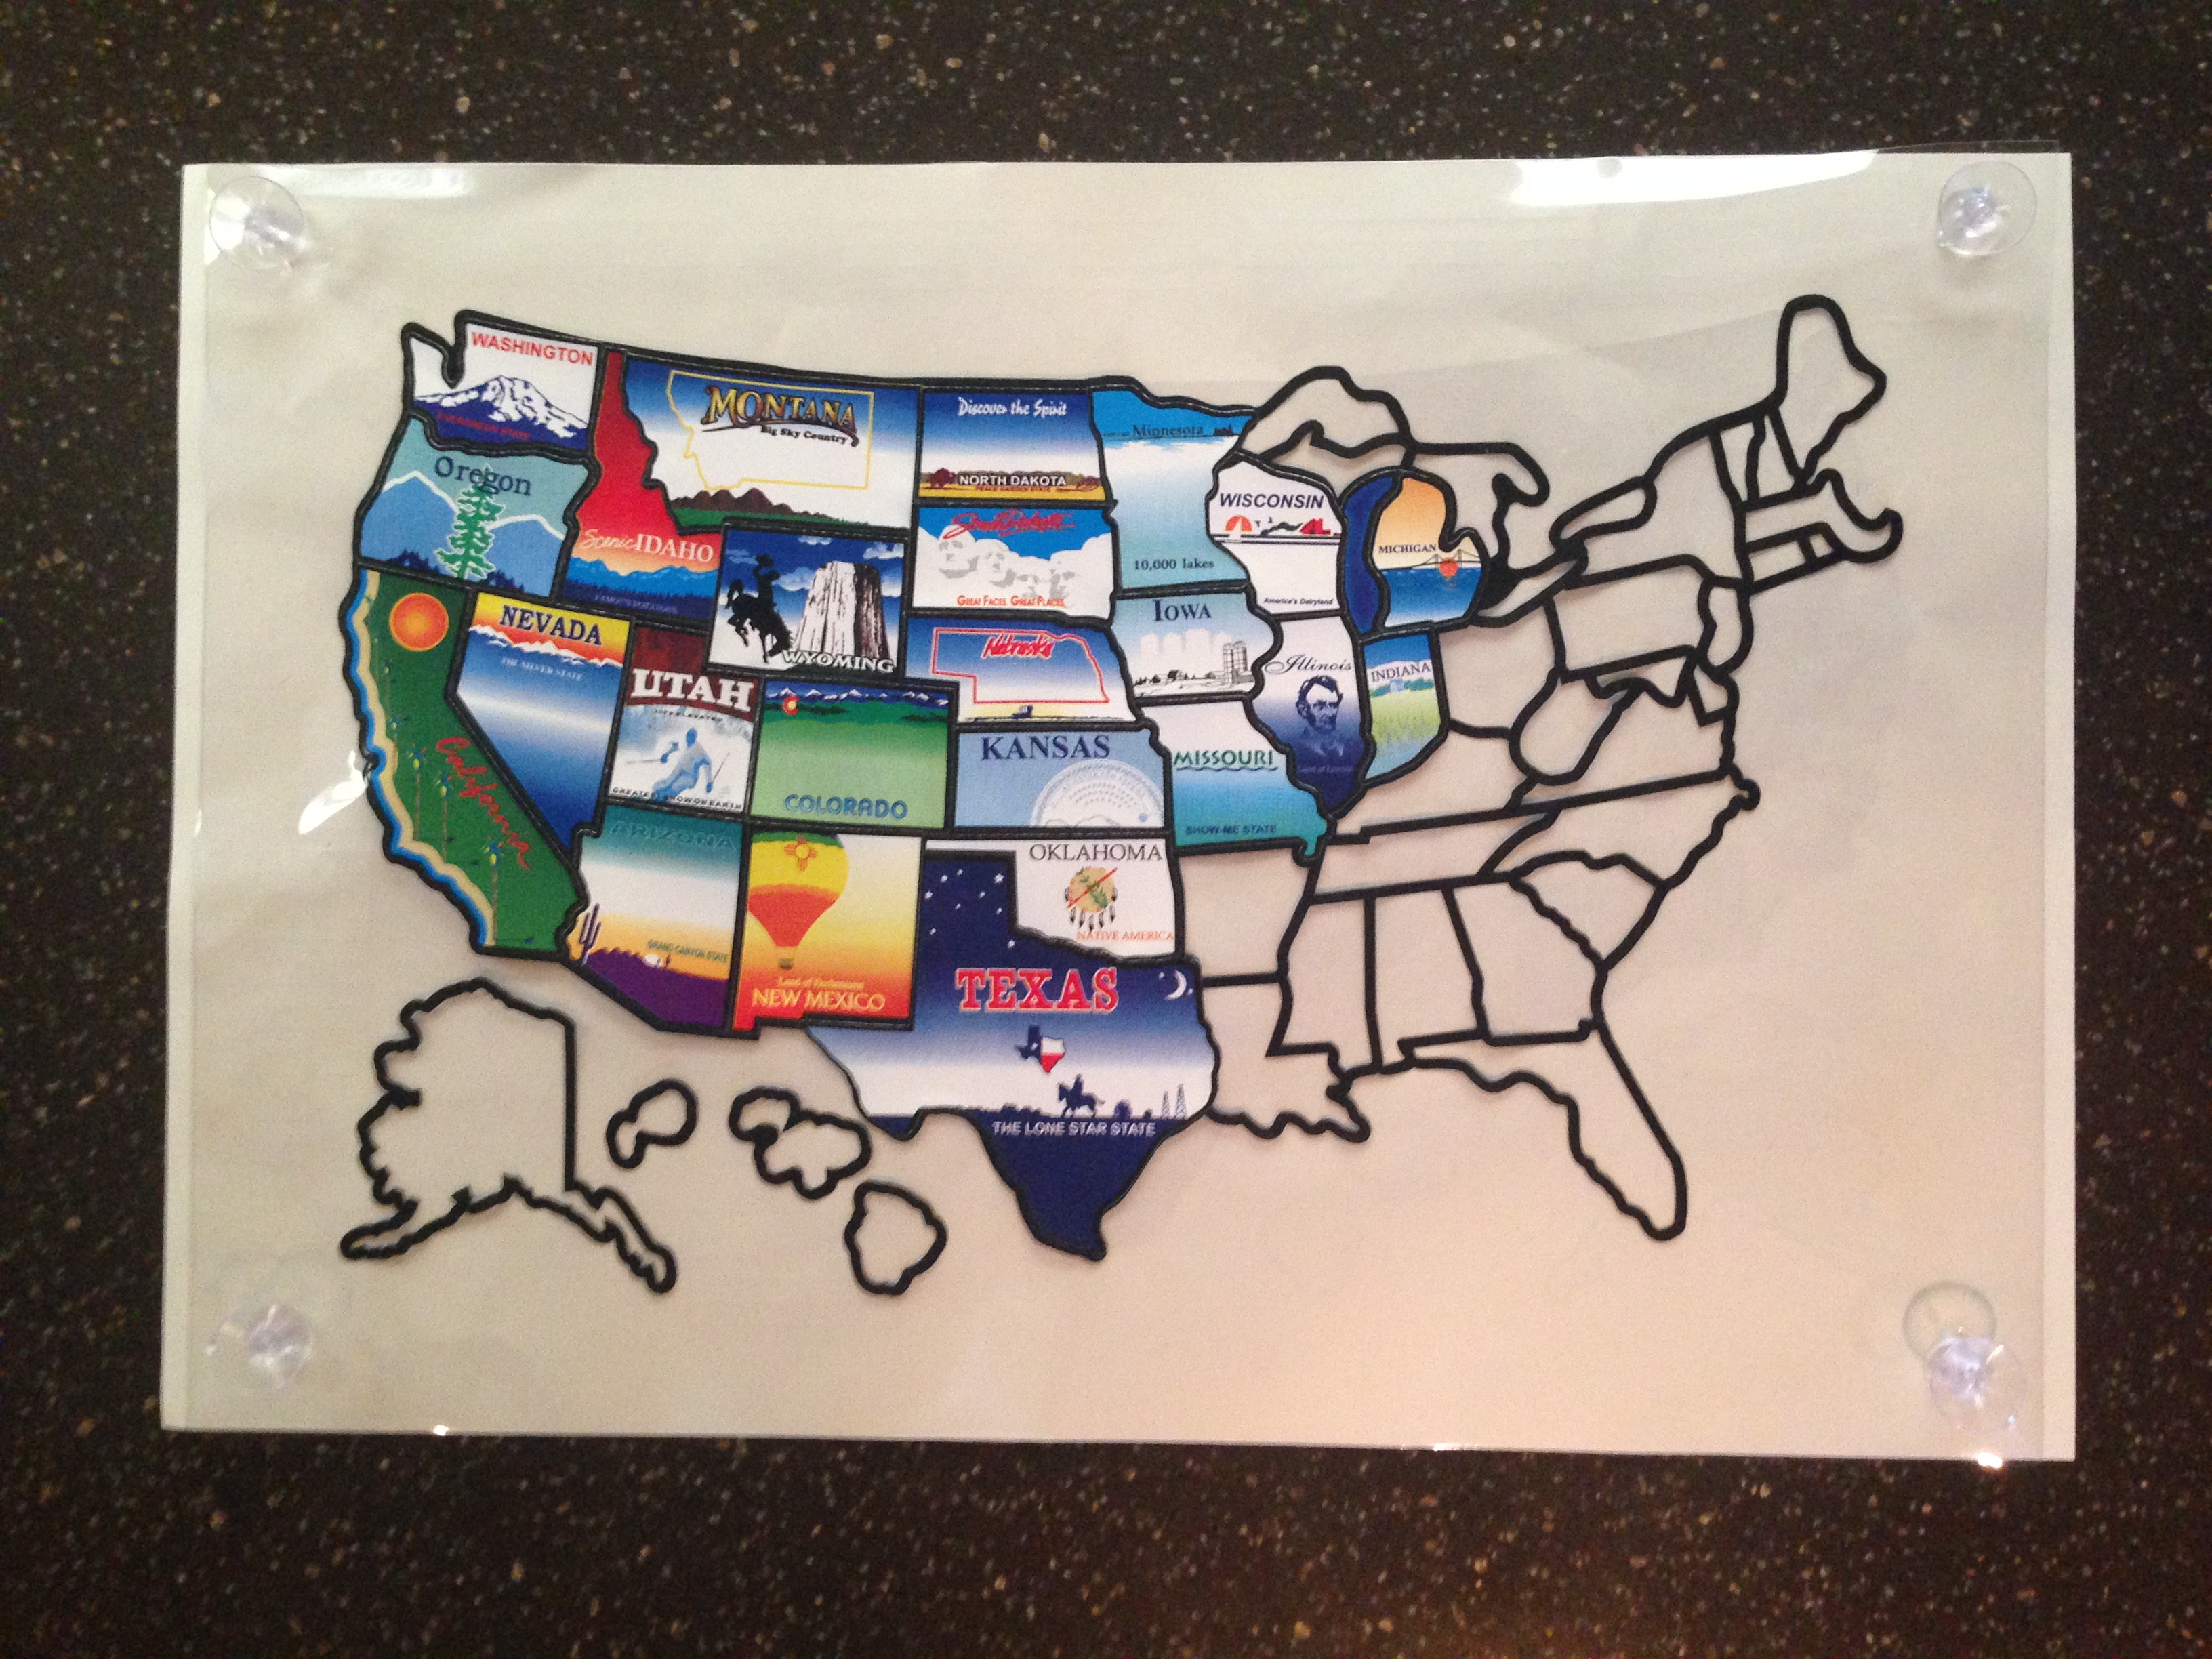 Halfway done! These are the states we've visited so far.